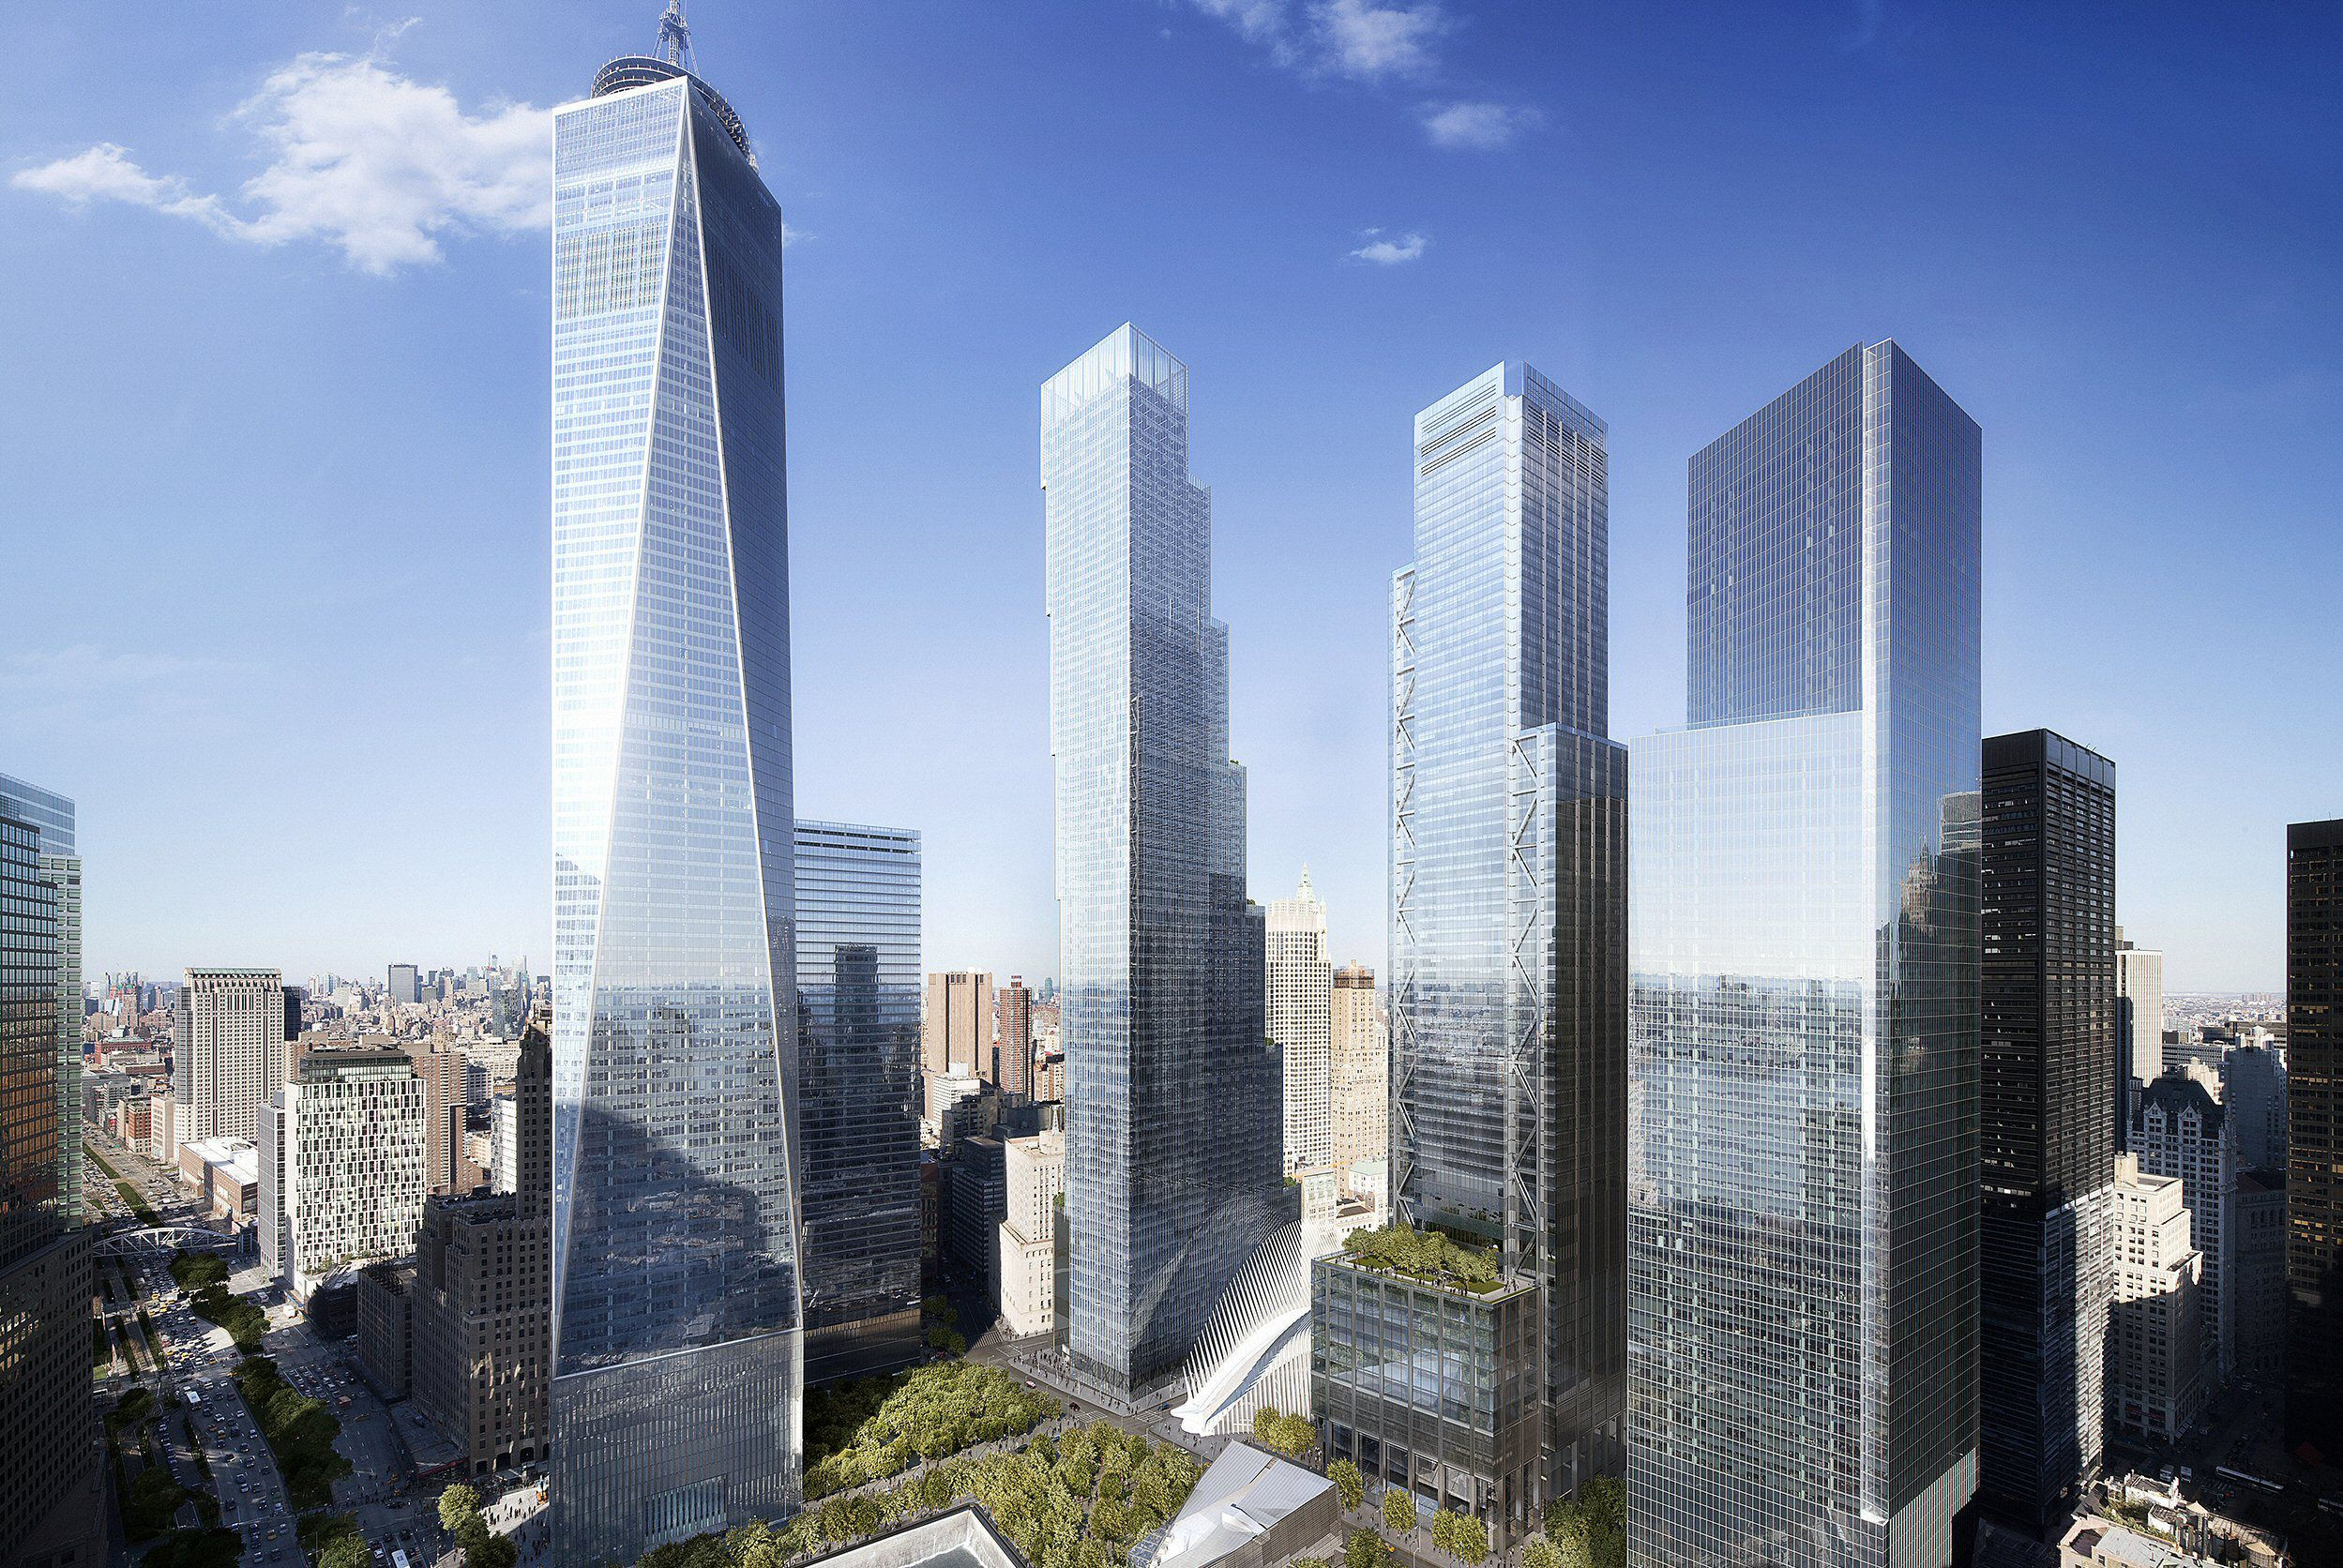 architect's rendering of how four skyscrapers would surround the 9/11 memorial park